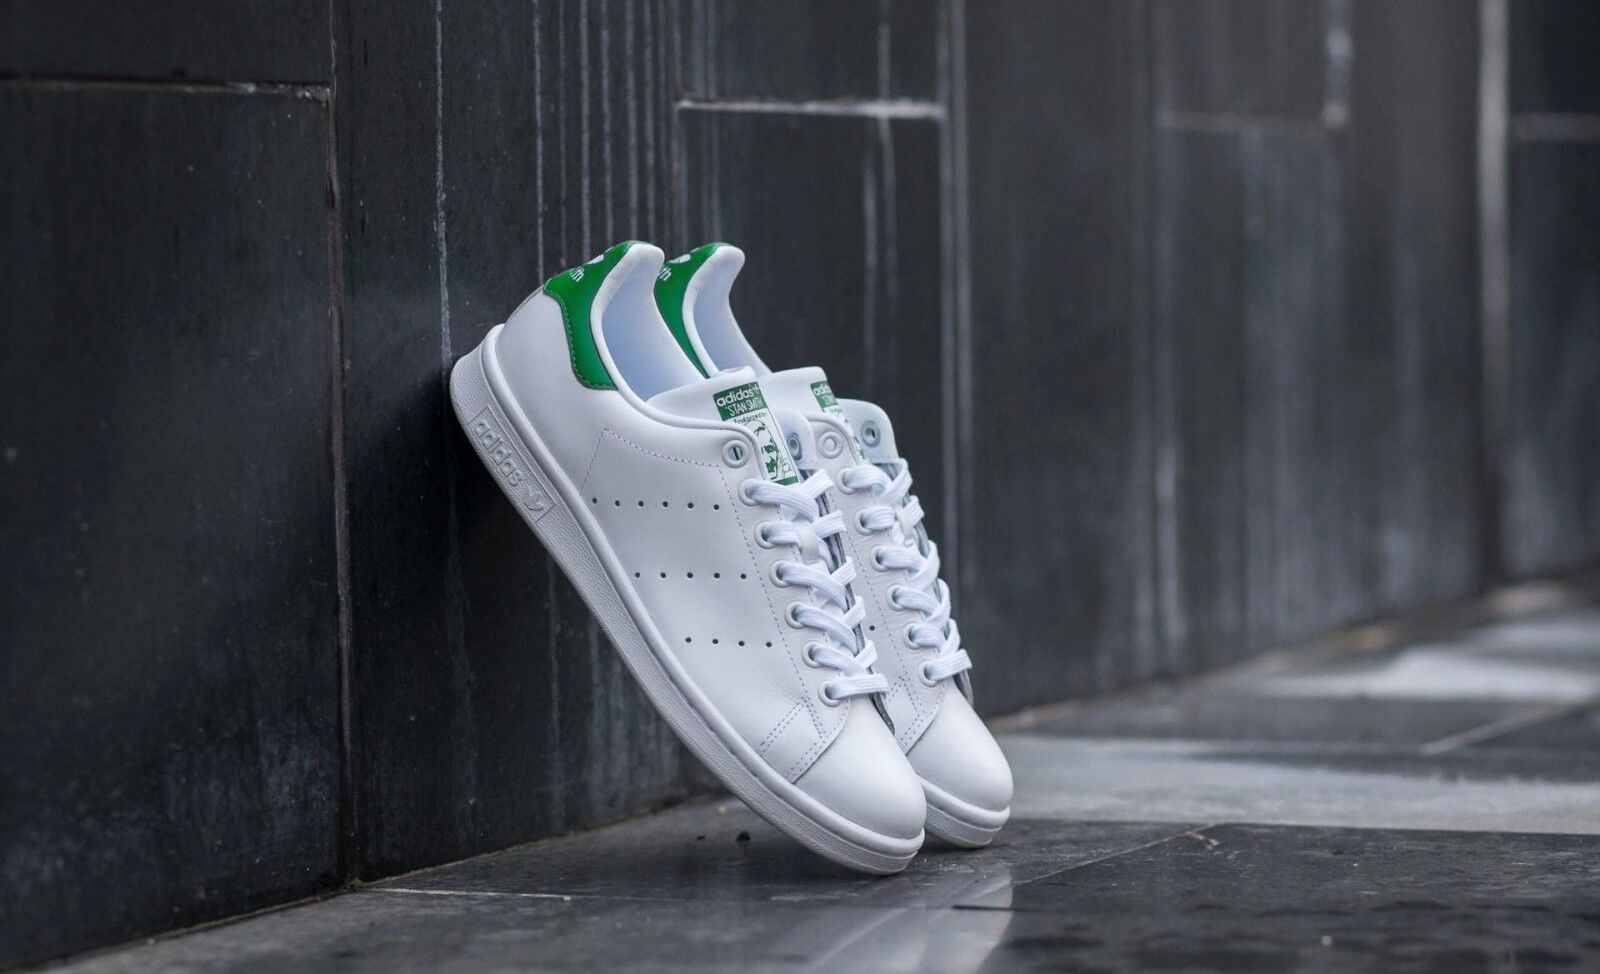 ADIDAS STAN SMITH schuhe MENS ORIGINALS SUPERSTAR Weiß Weiß Weiß LEATHER GAZELLE S75074 4e7417